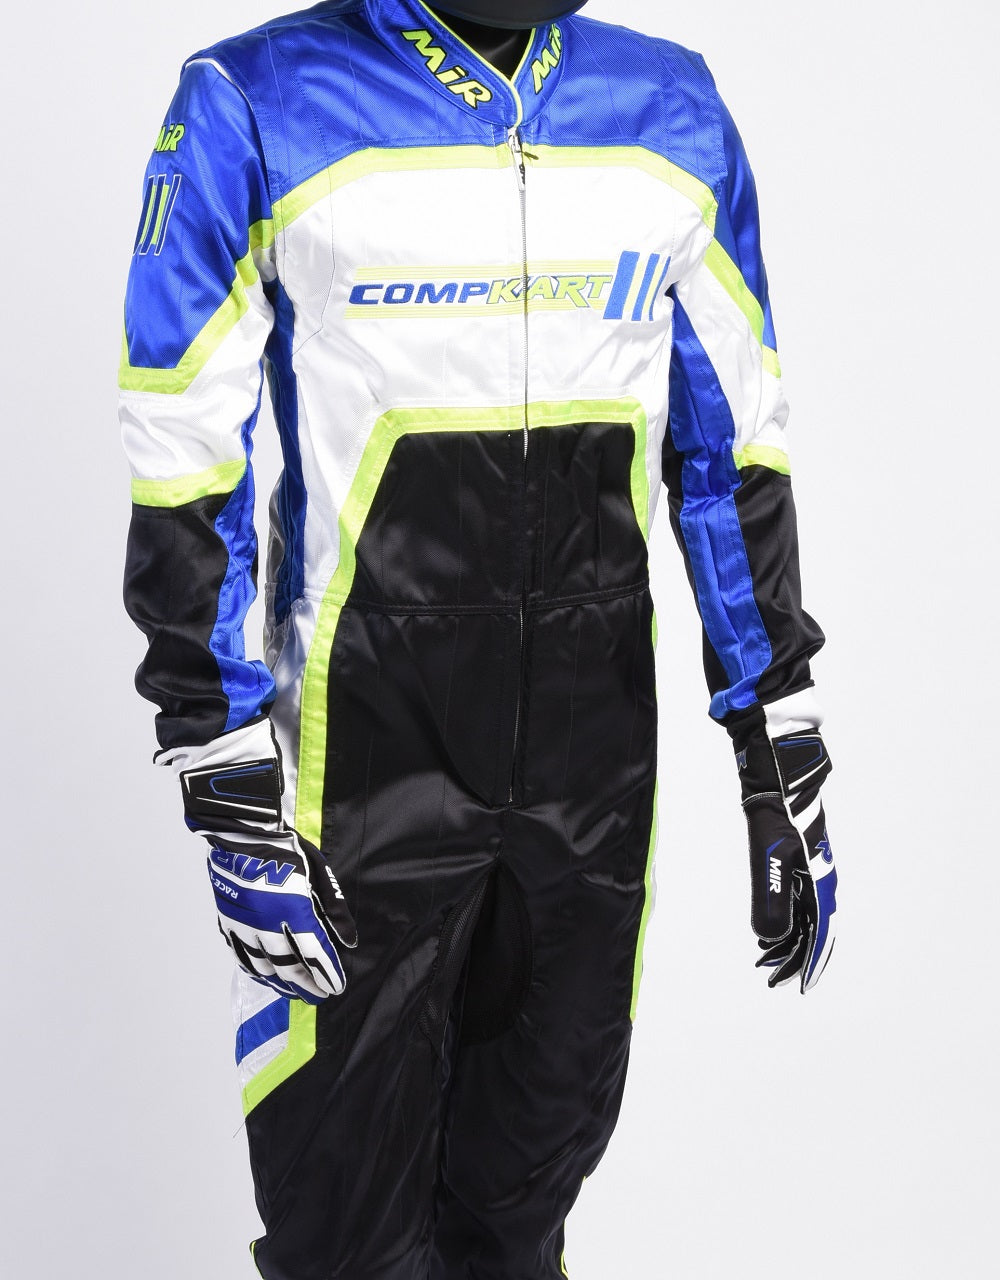 CompKart Factory Race Suit MiR